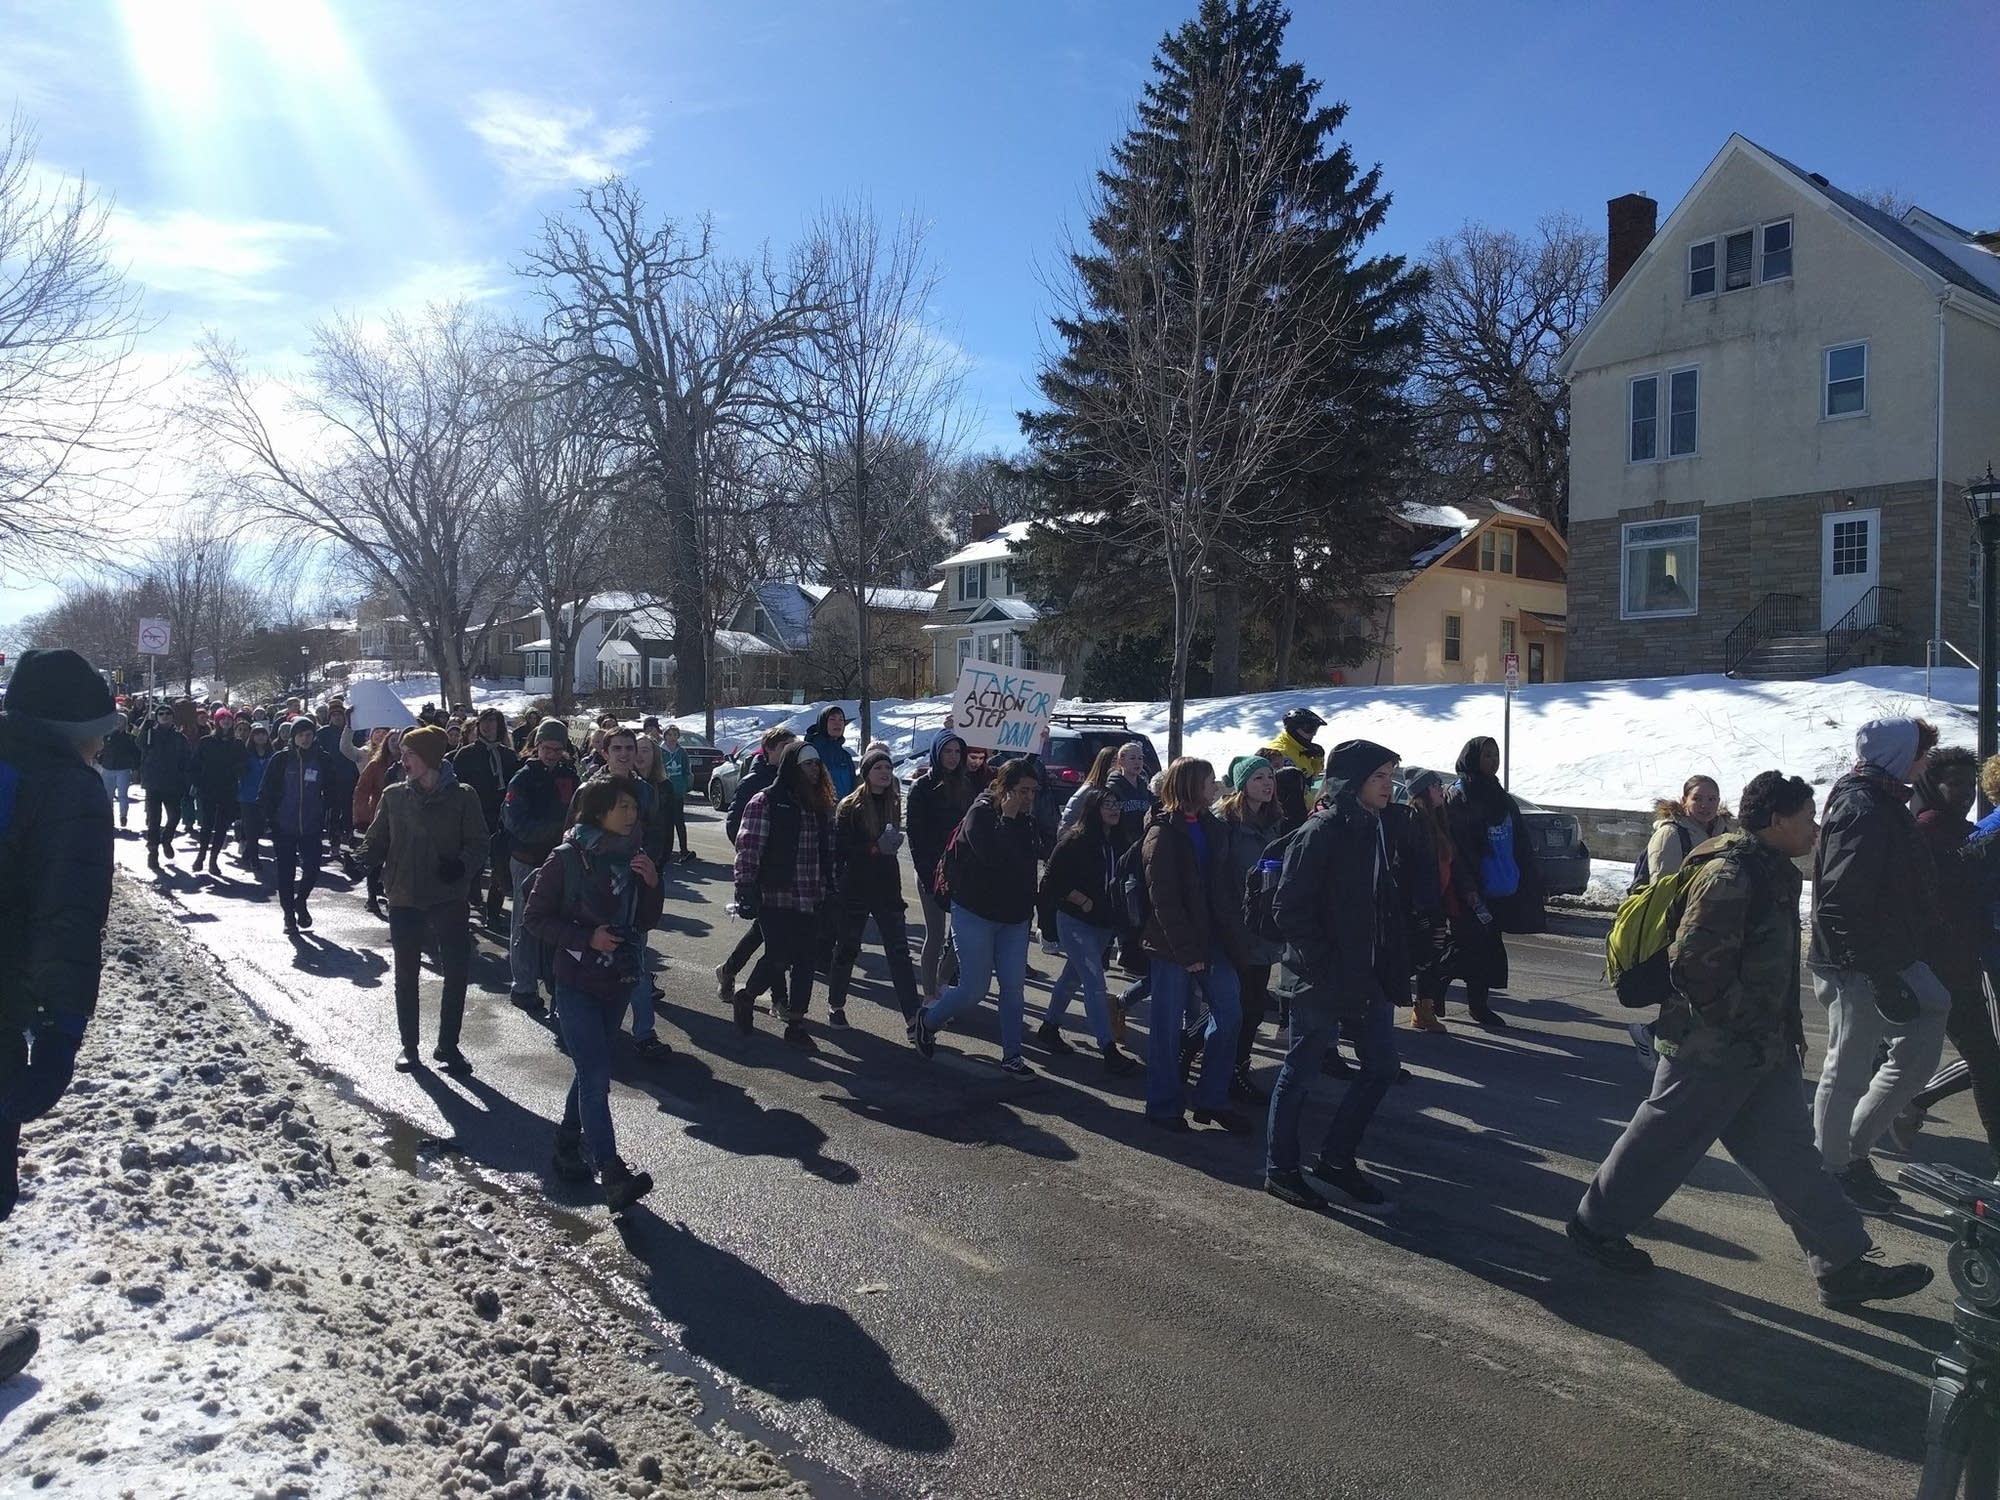 Hundreds of students rallied at Martin Luther King Jr park.